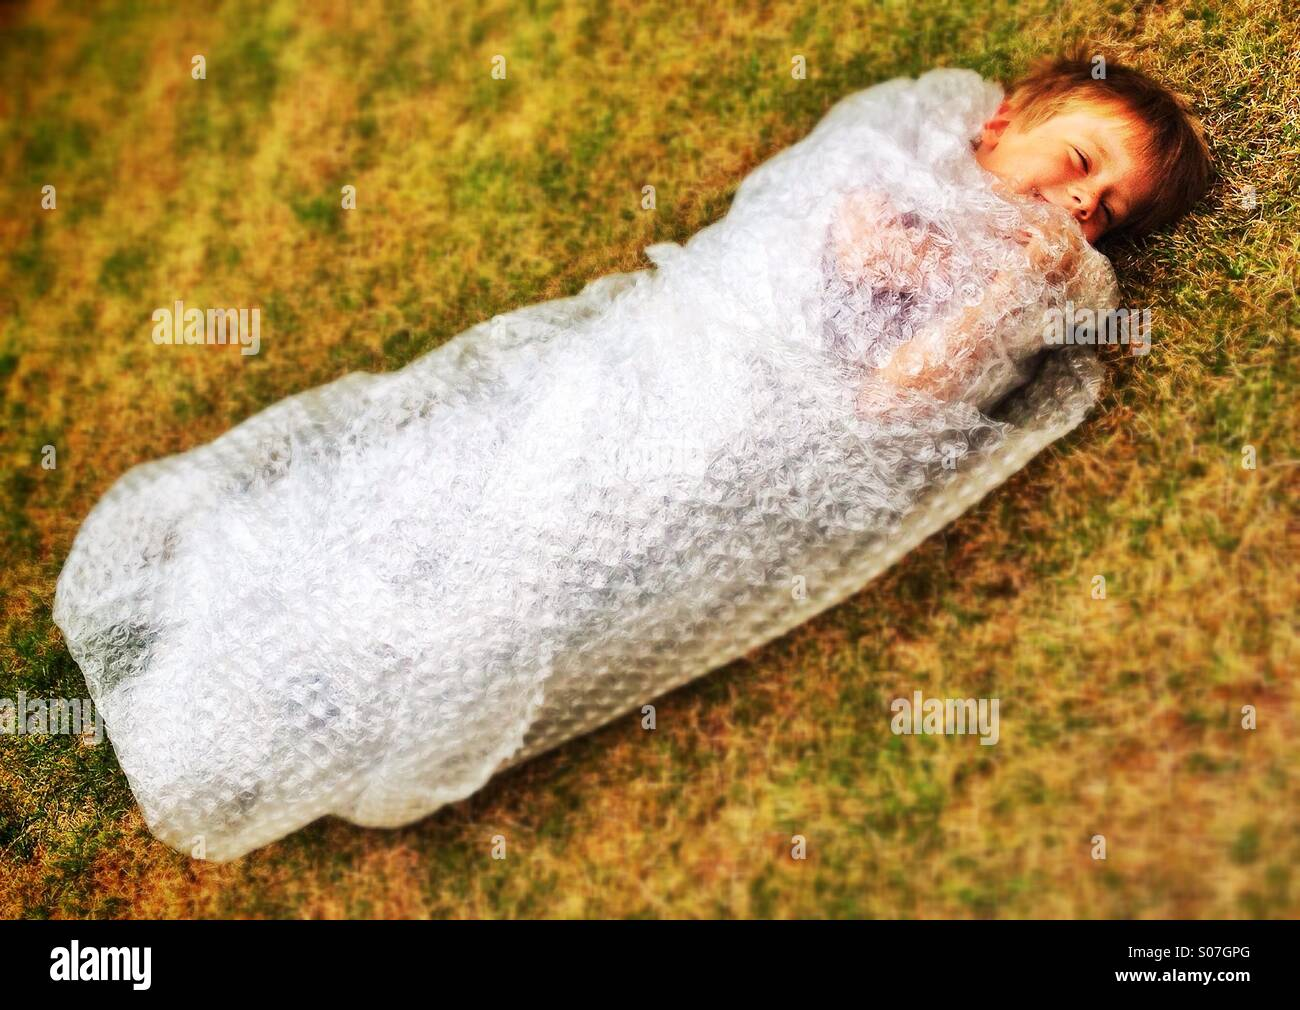 Bubble wrap boy - Stock Image